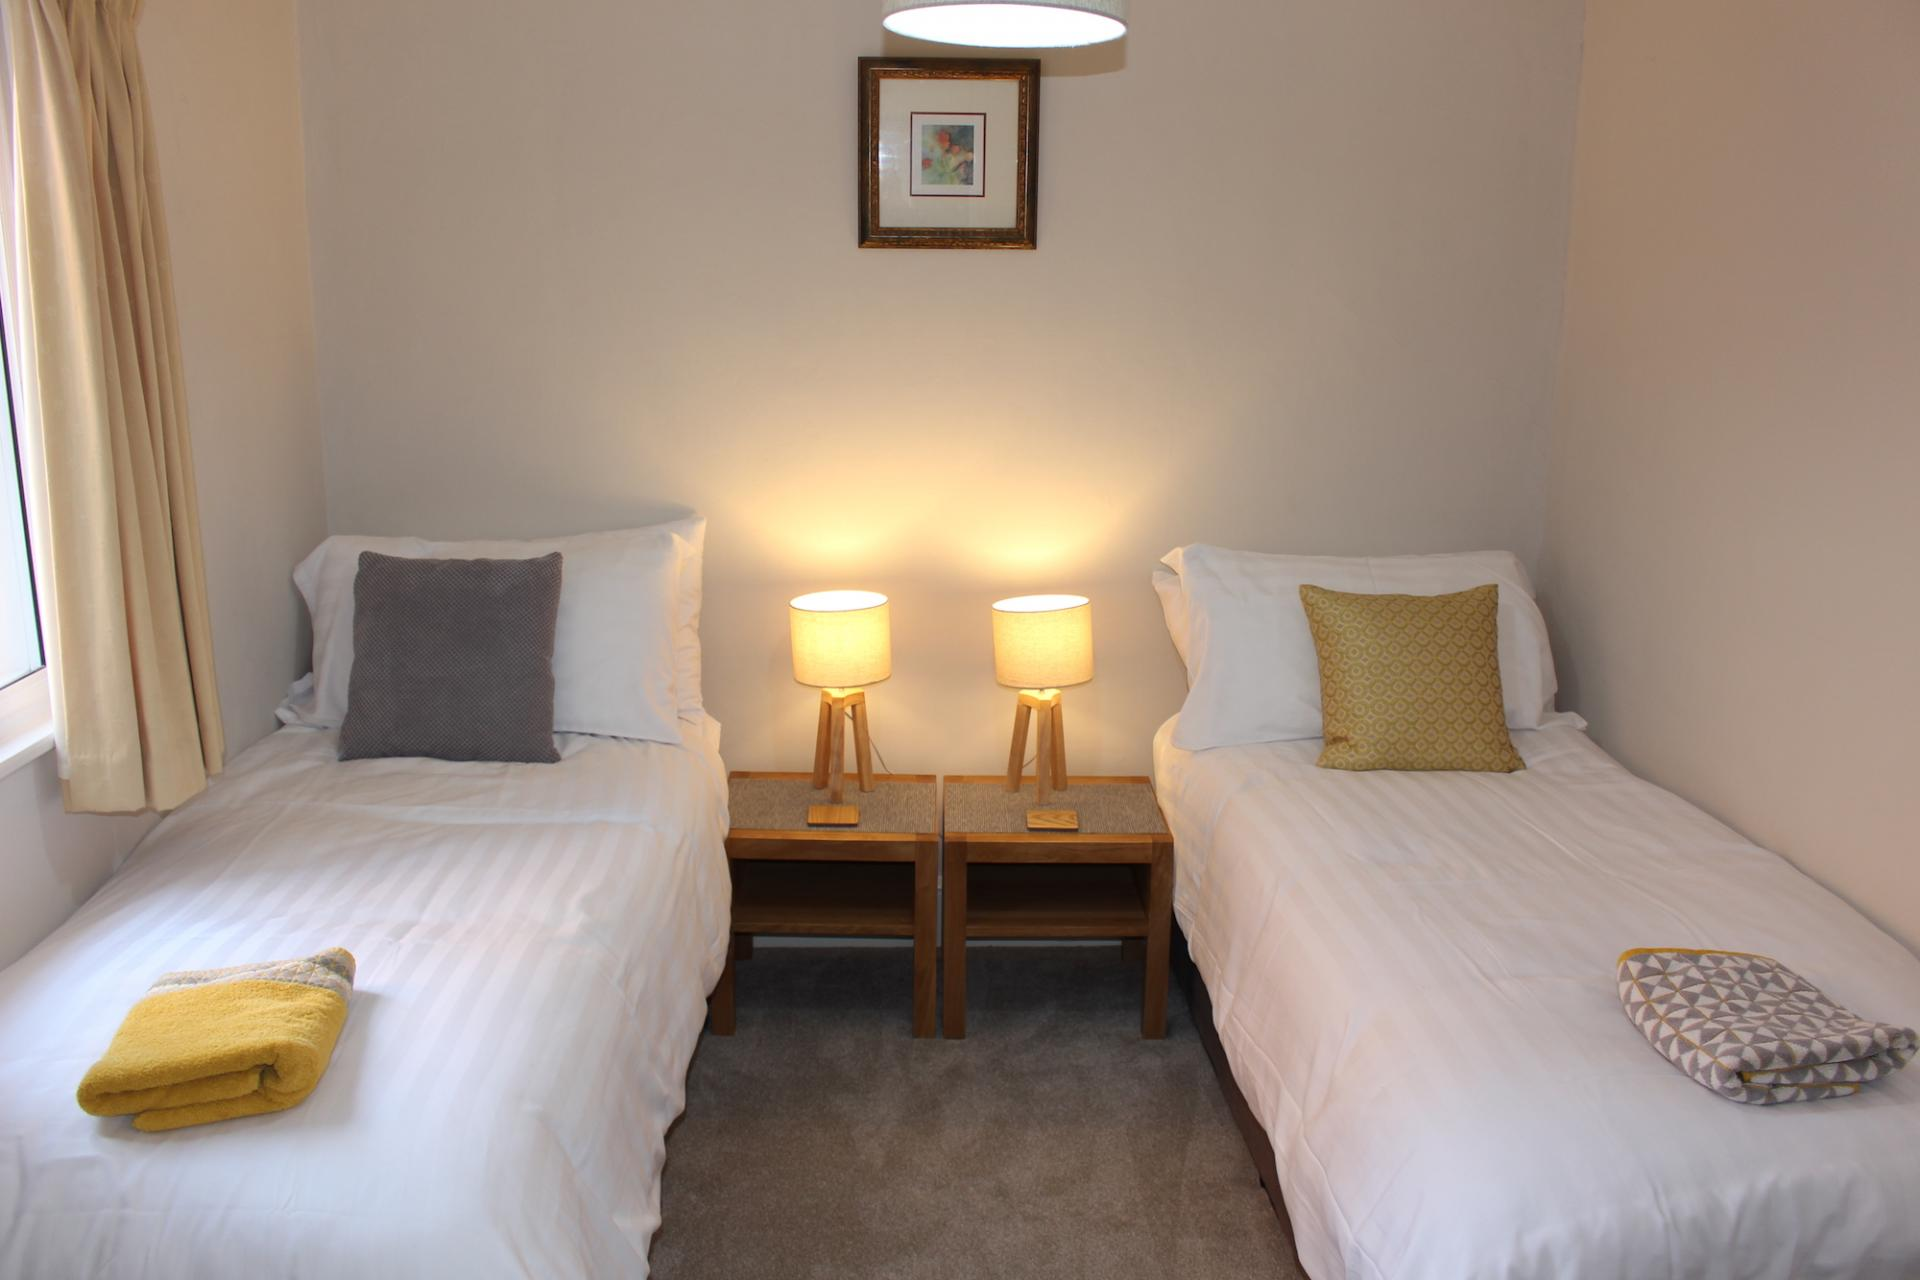 Beds at Chilton Serviced Apartments